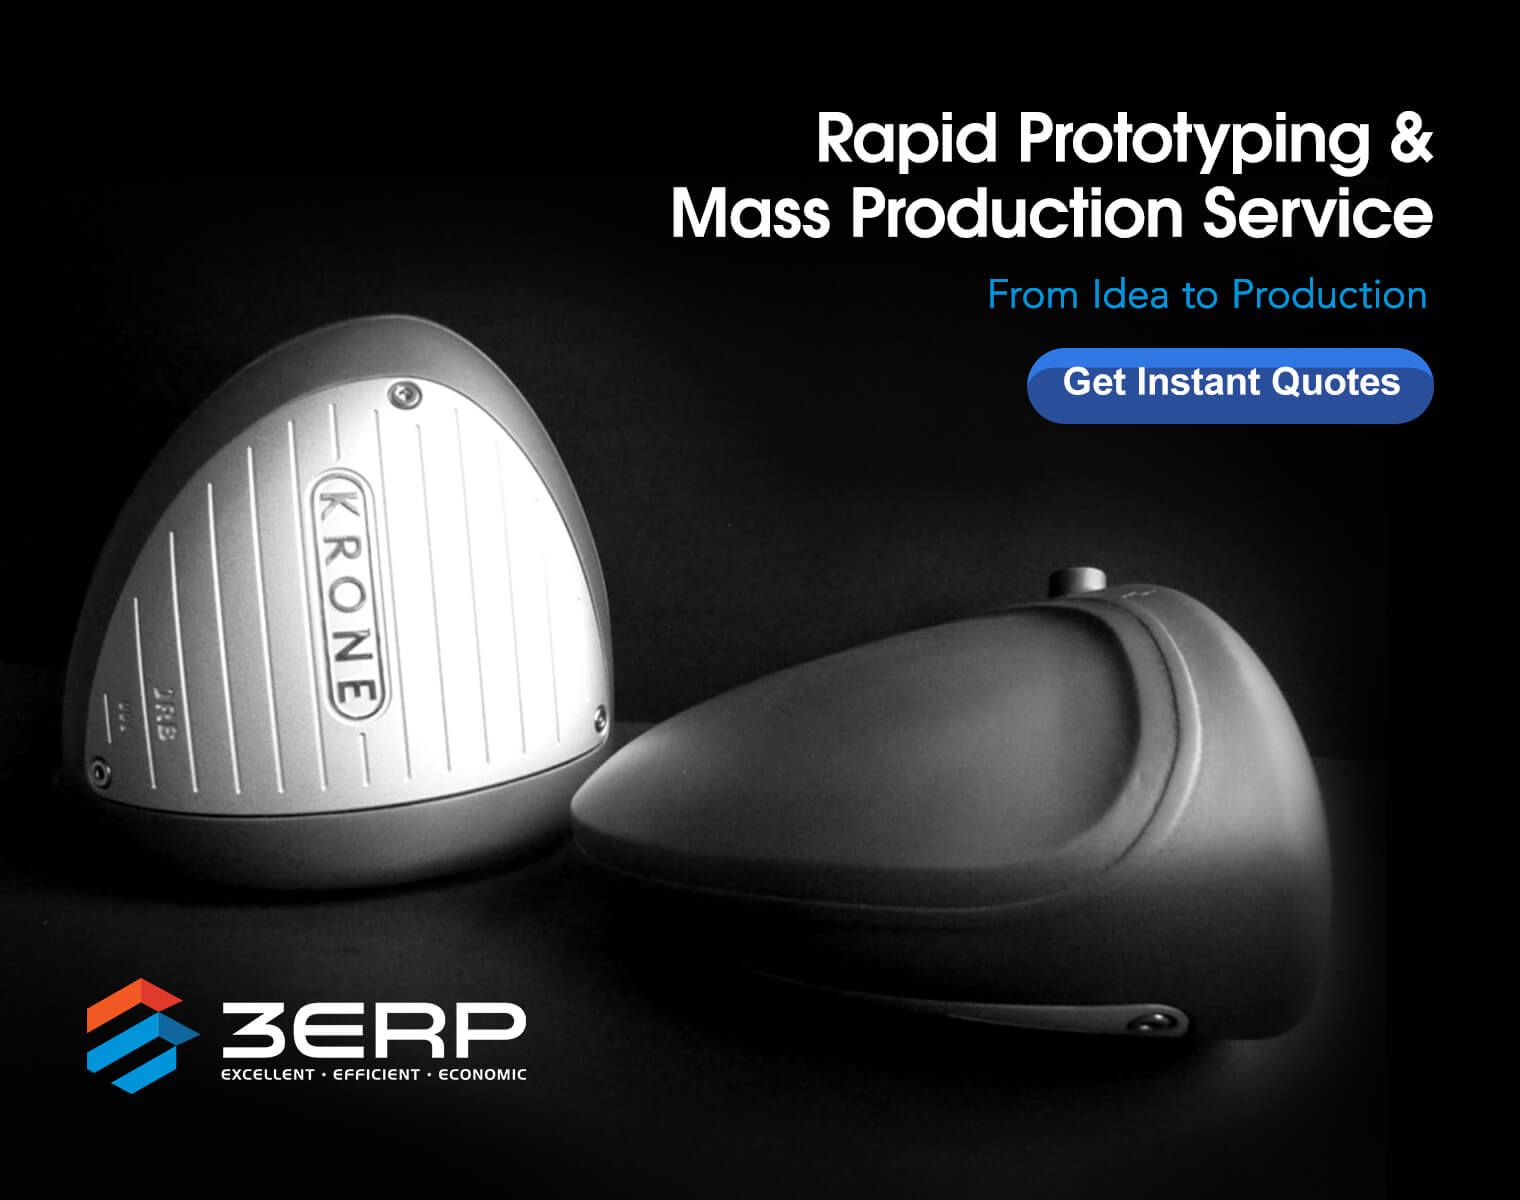 rapid prototyping and mass production cta